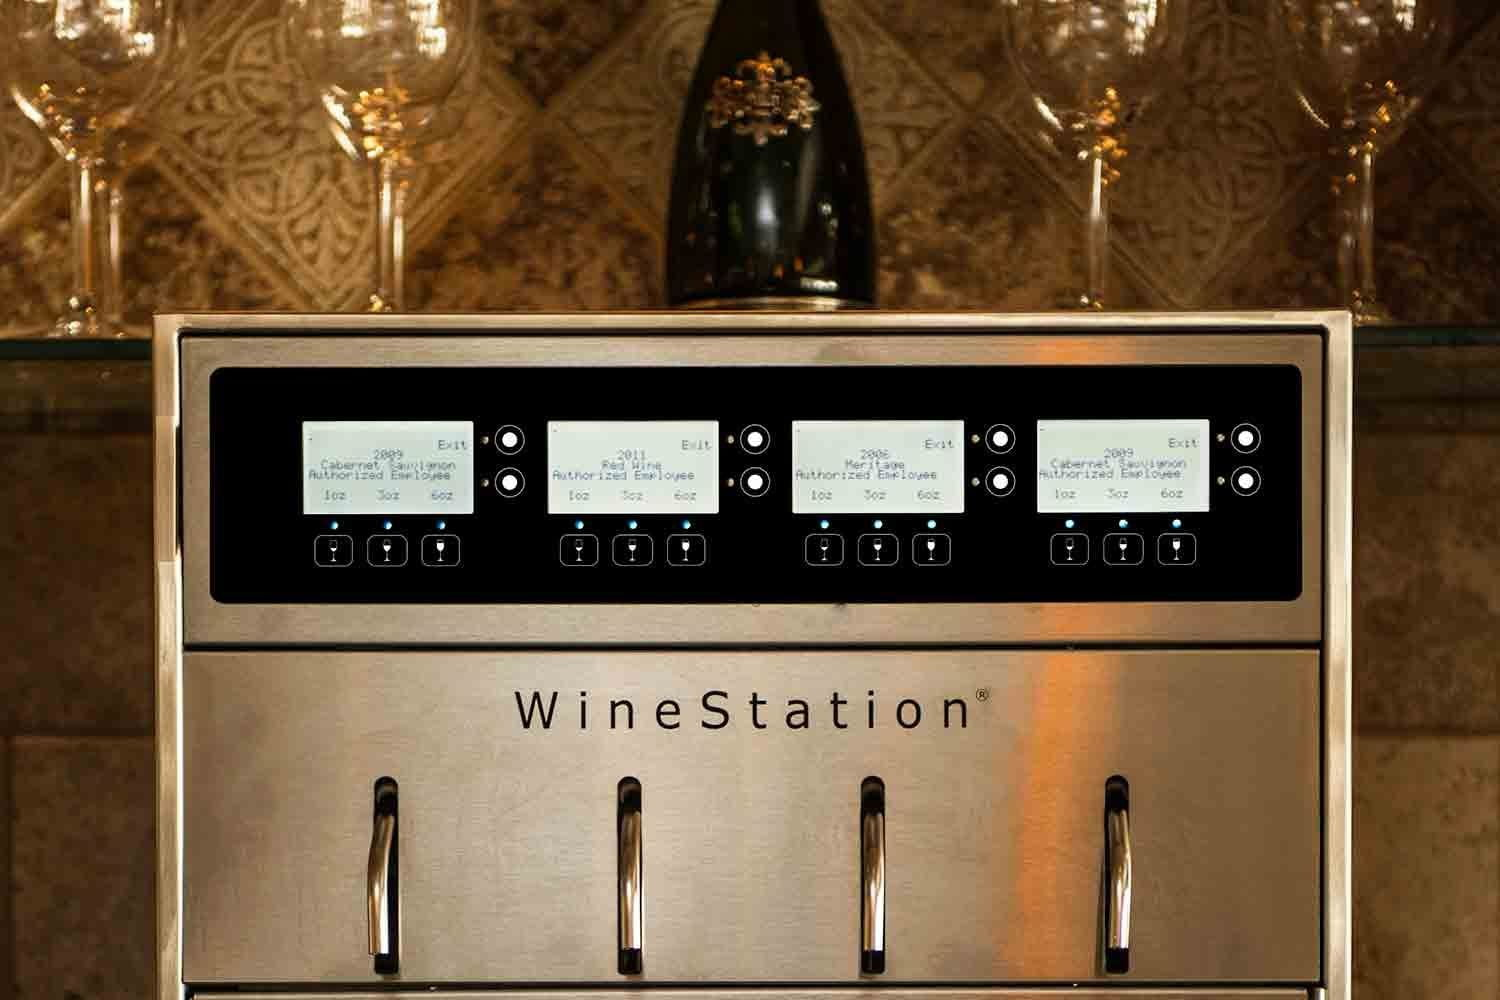 dacors voice activated oven debuts at ces 2015 dacor discovery winestation